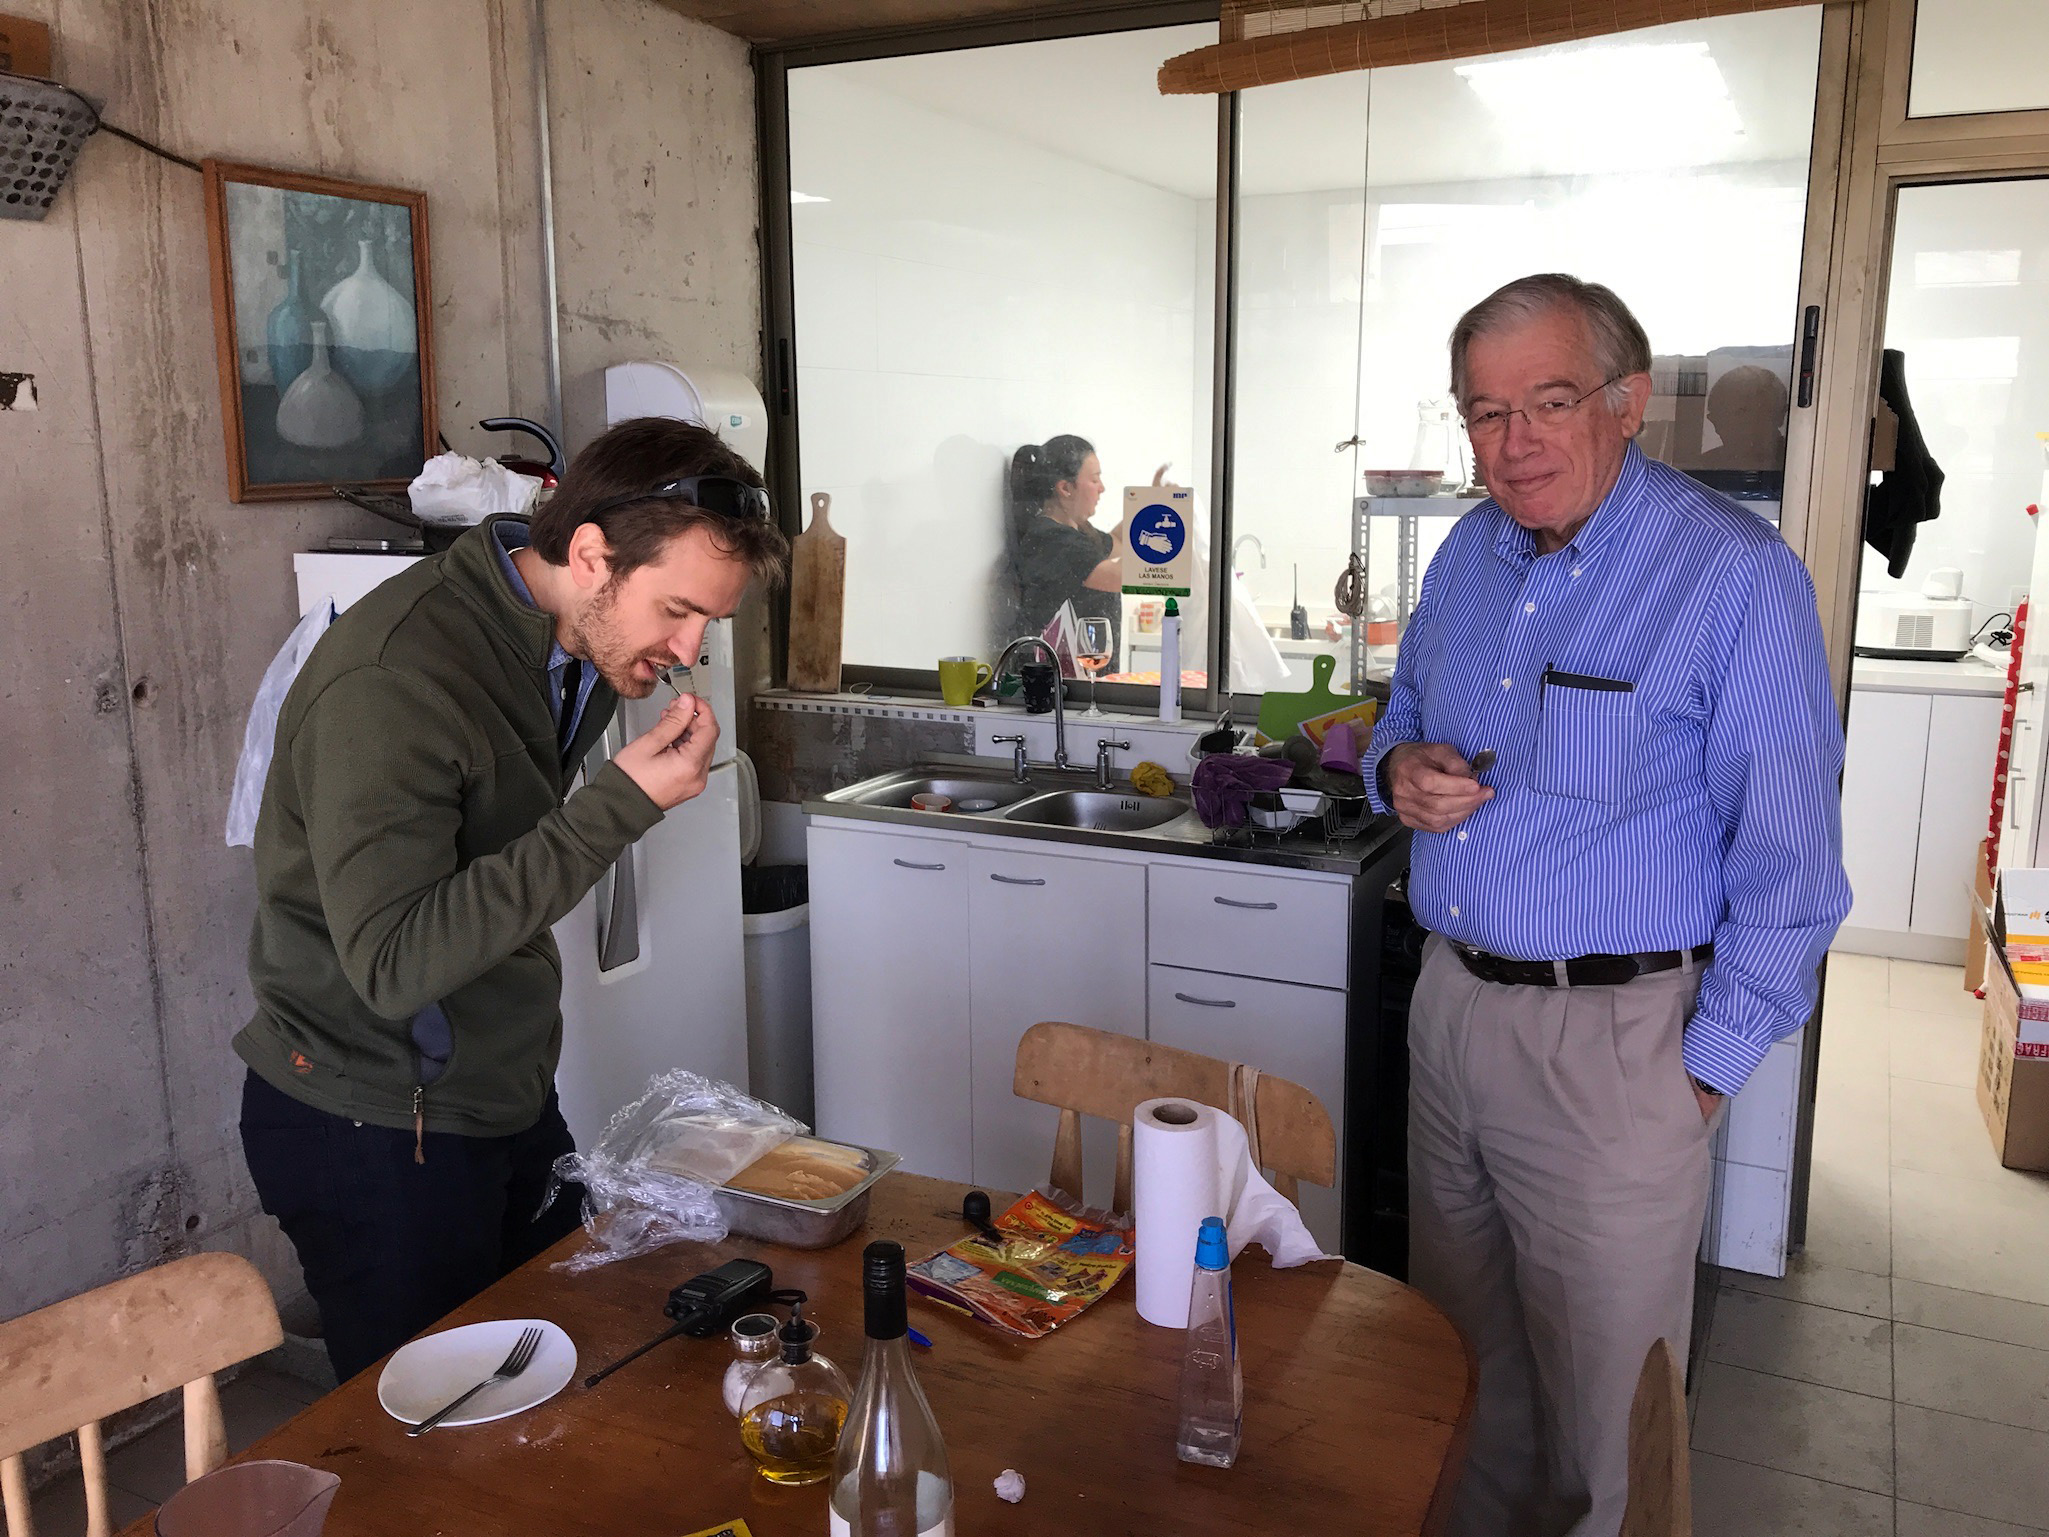 Amael and my Dad, Michael Kingston, sample homemade salted caramel ice cream in the staff kitchen.